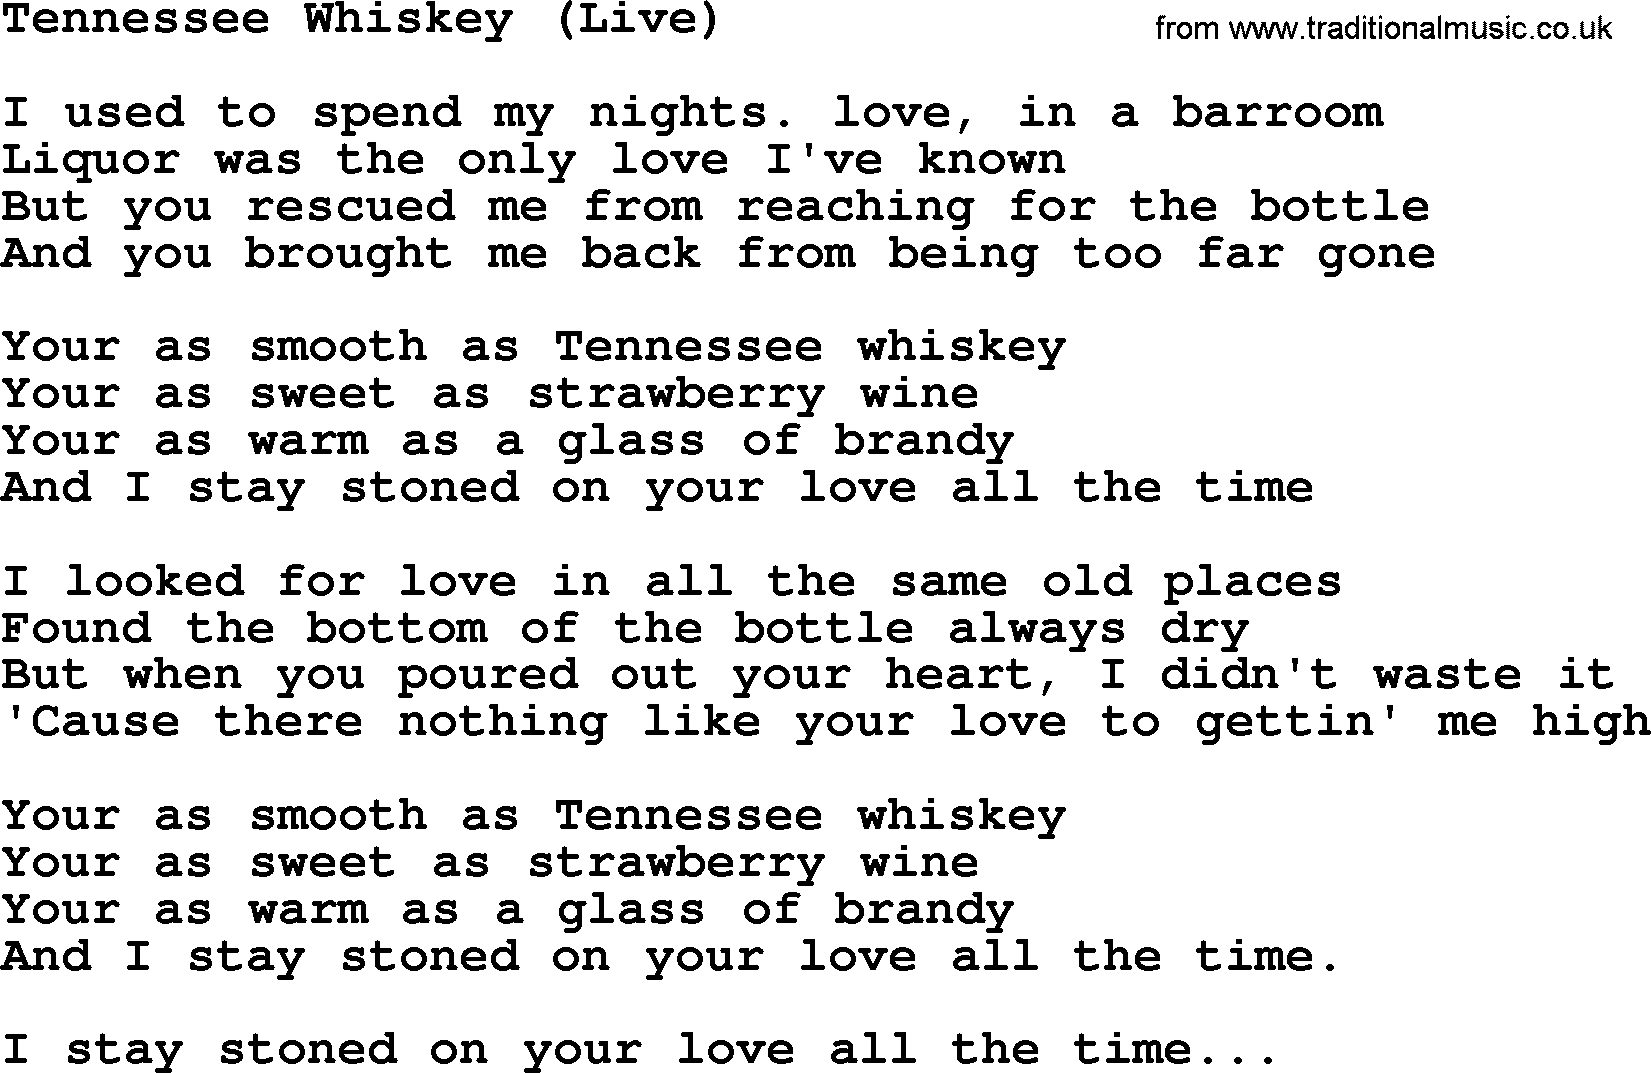 Download tennessee whiskey live as pdf file for printing etc